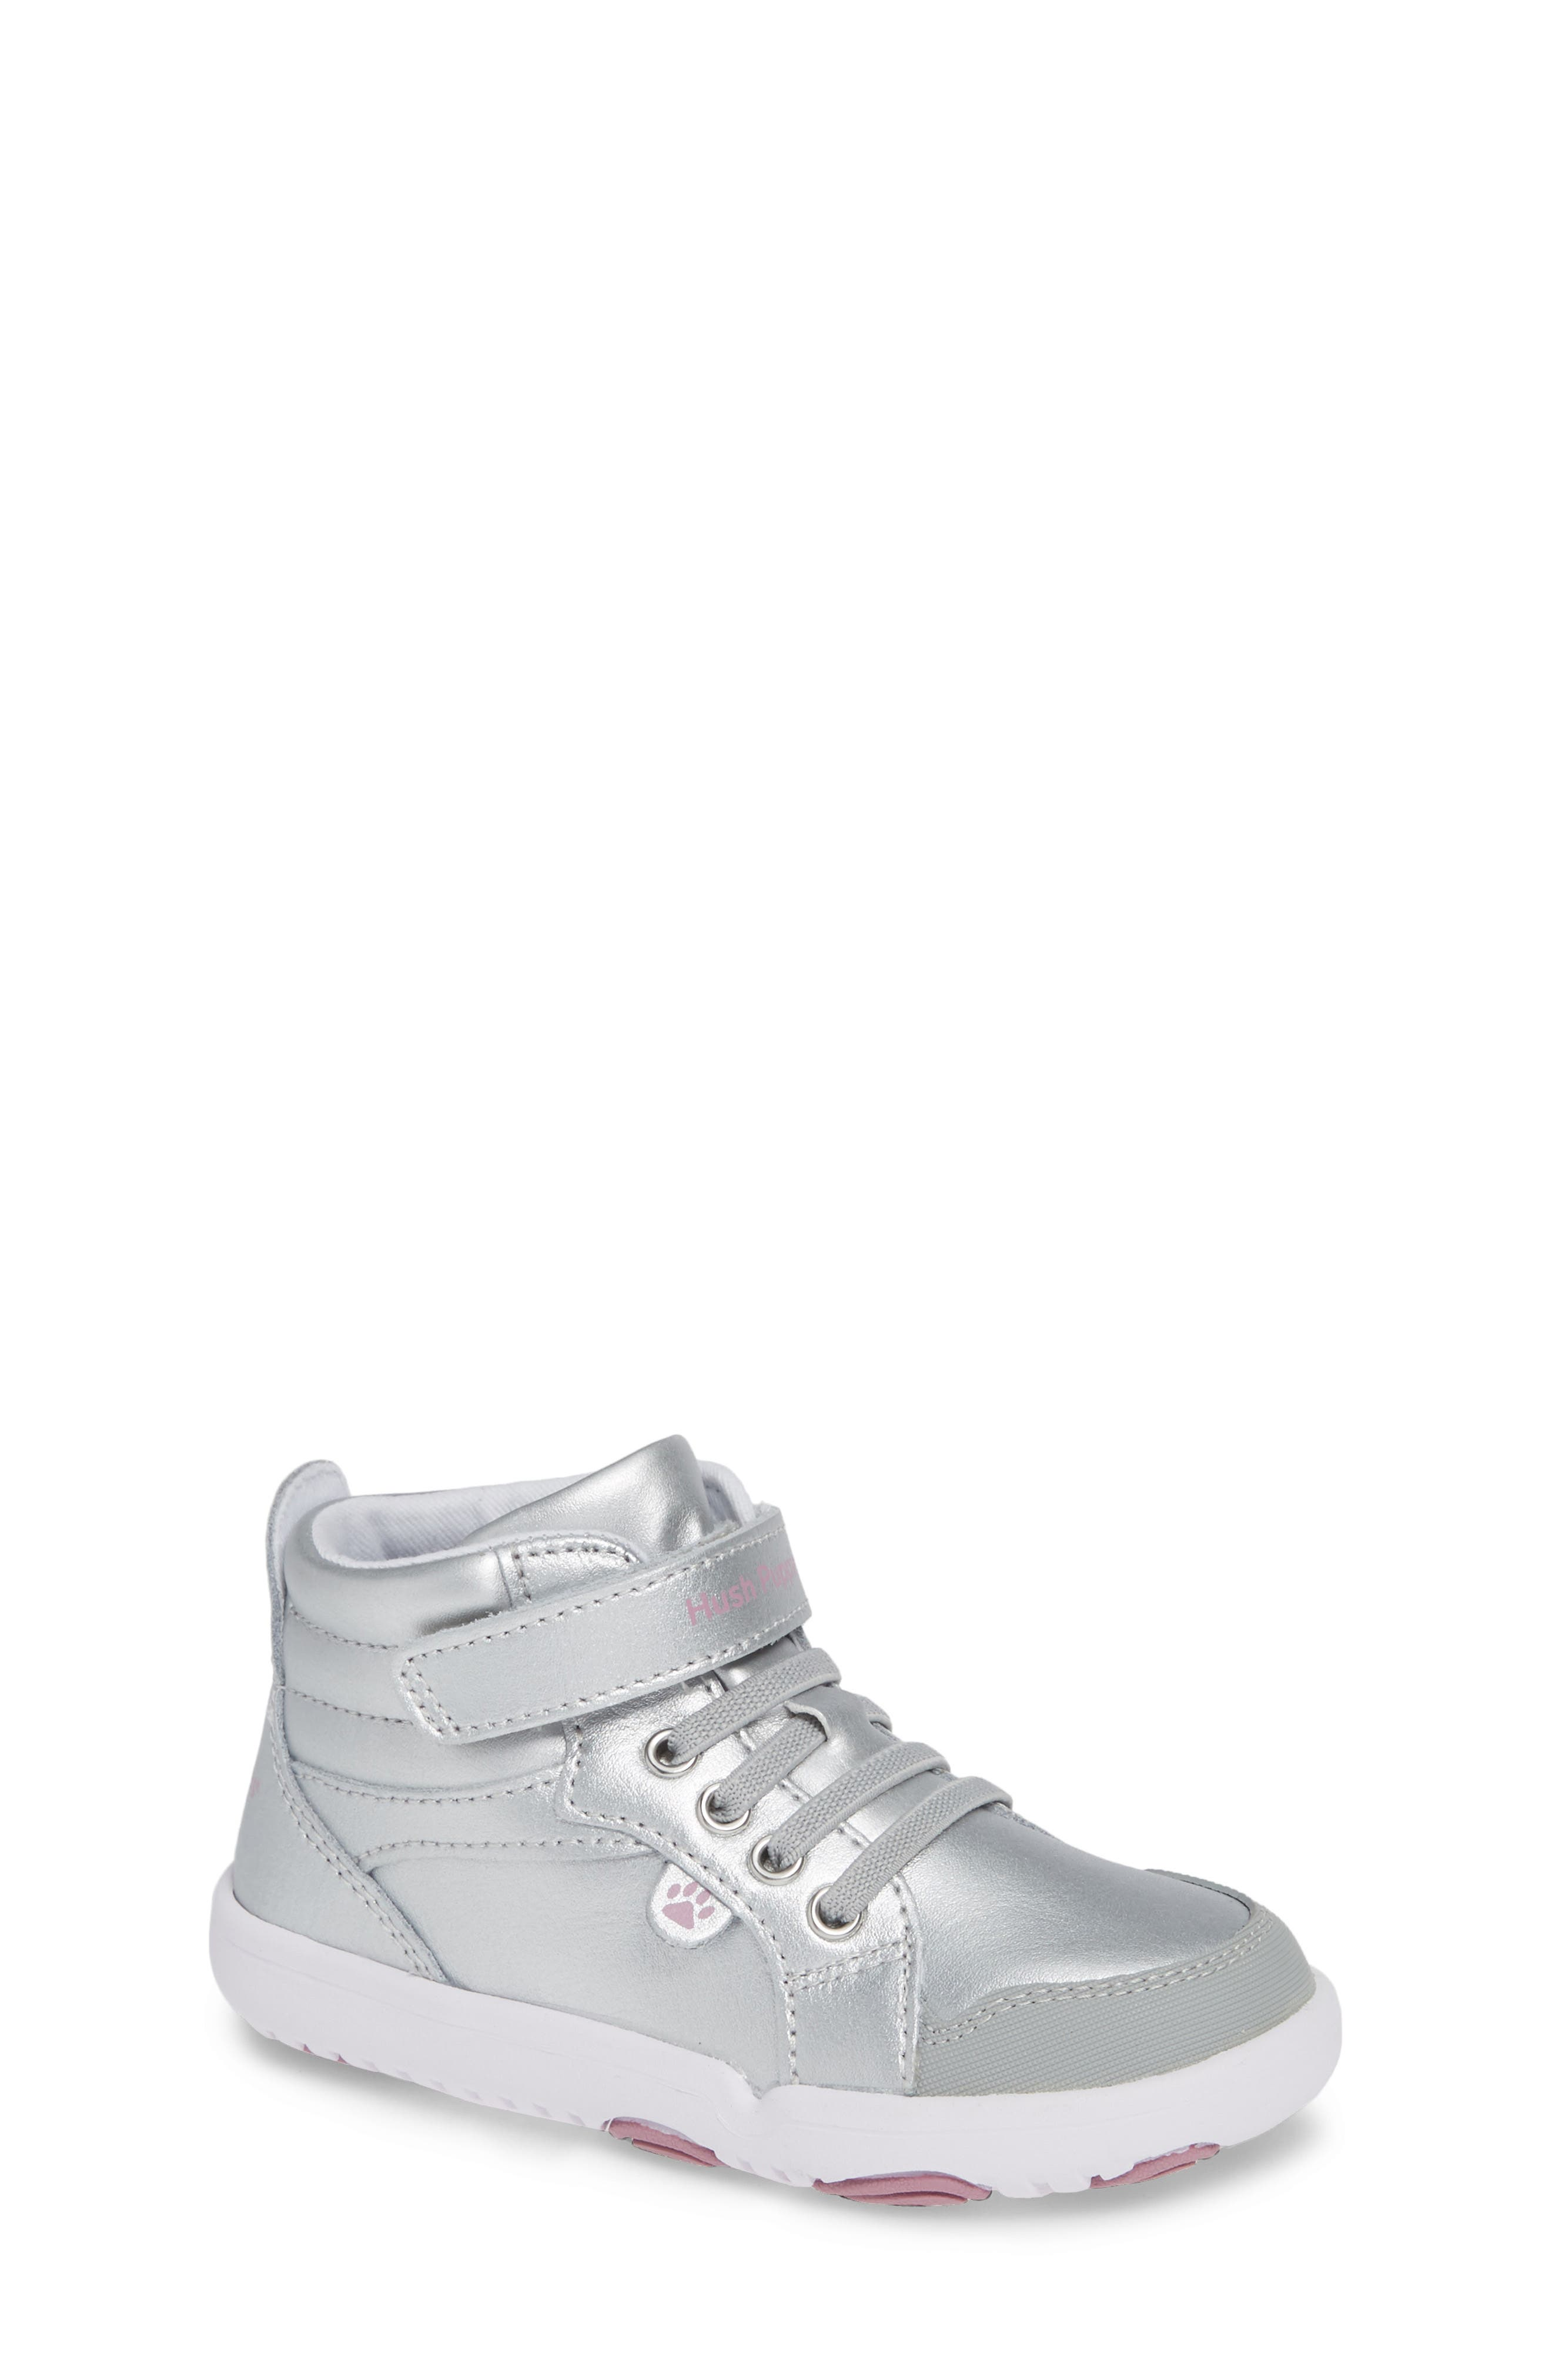 Buddy High Top Sneaker,                         Main,                         color, SILVER